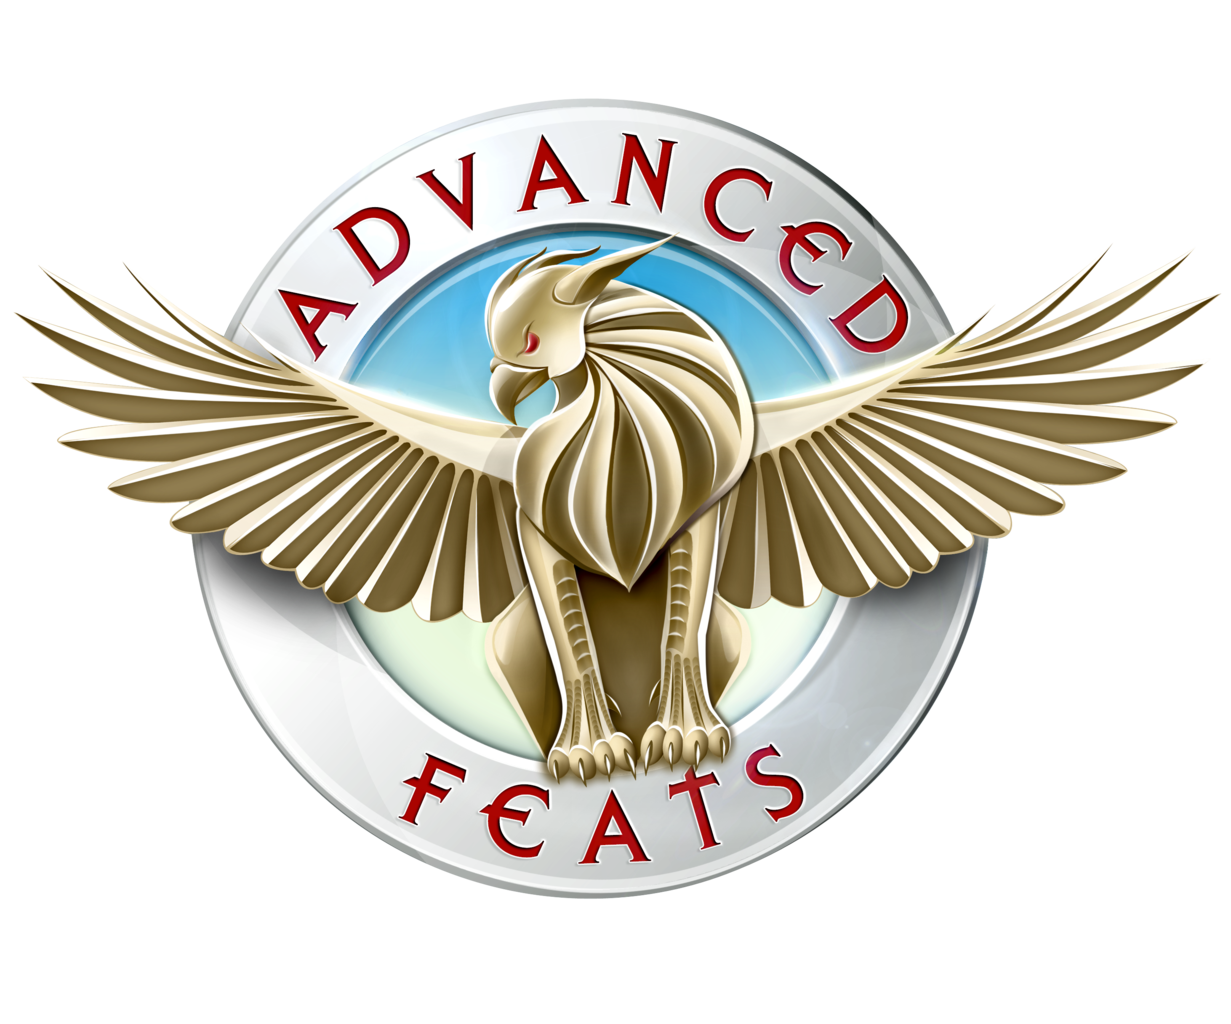 Advanced Feats